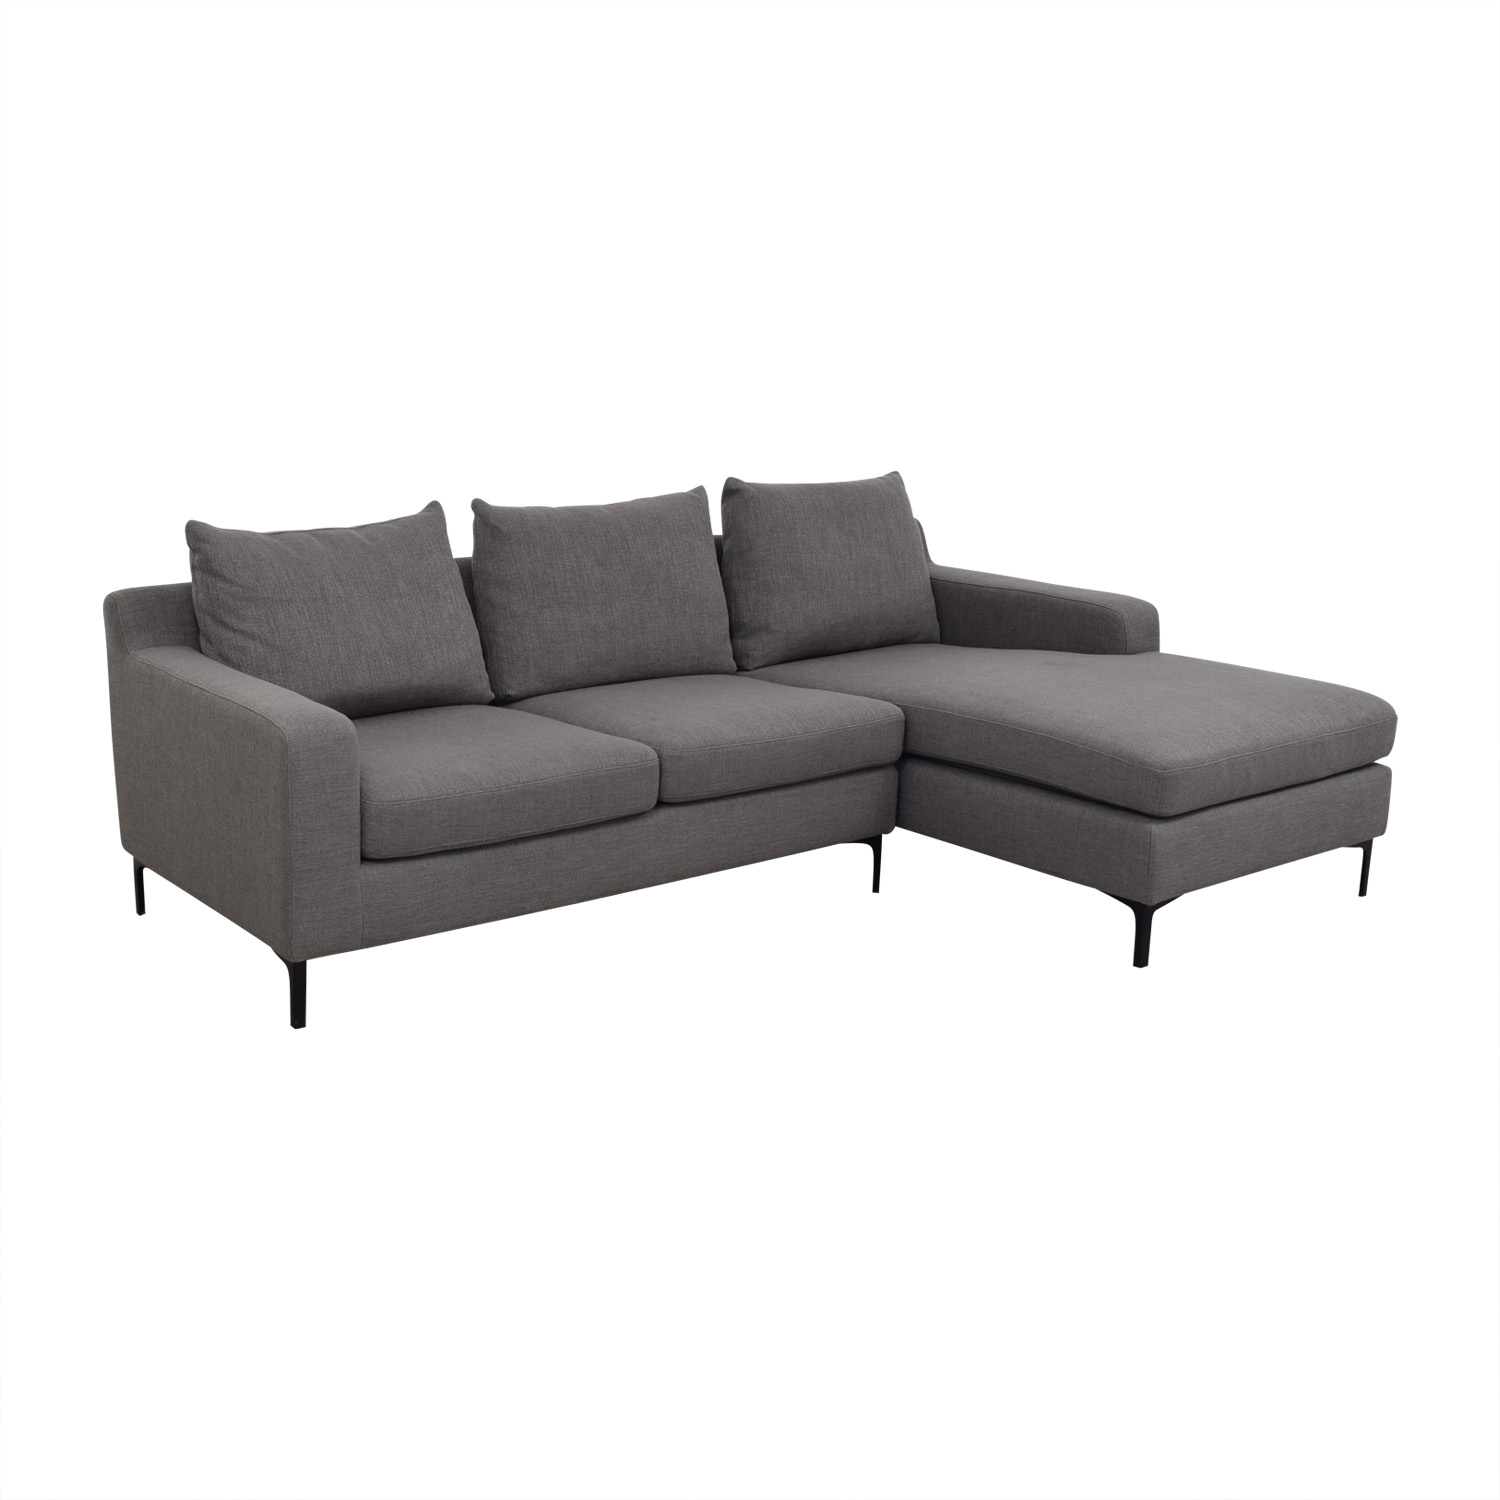 Interior Define Sloan Sectional Sofa Left Chaise coupon